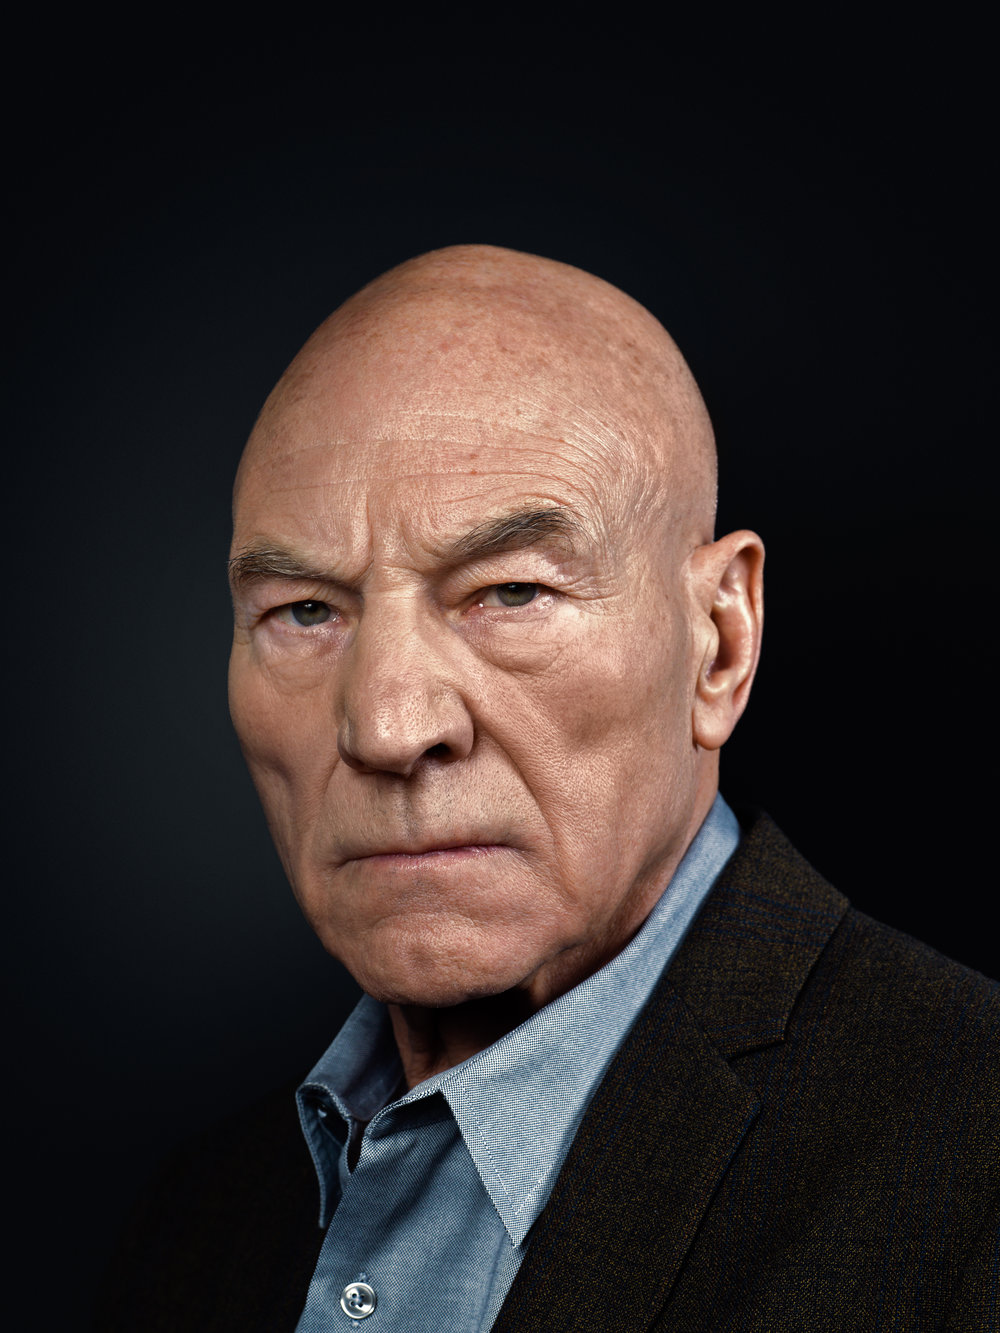 Sir Patrick Stewart by Rory Lewis